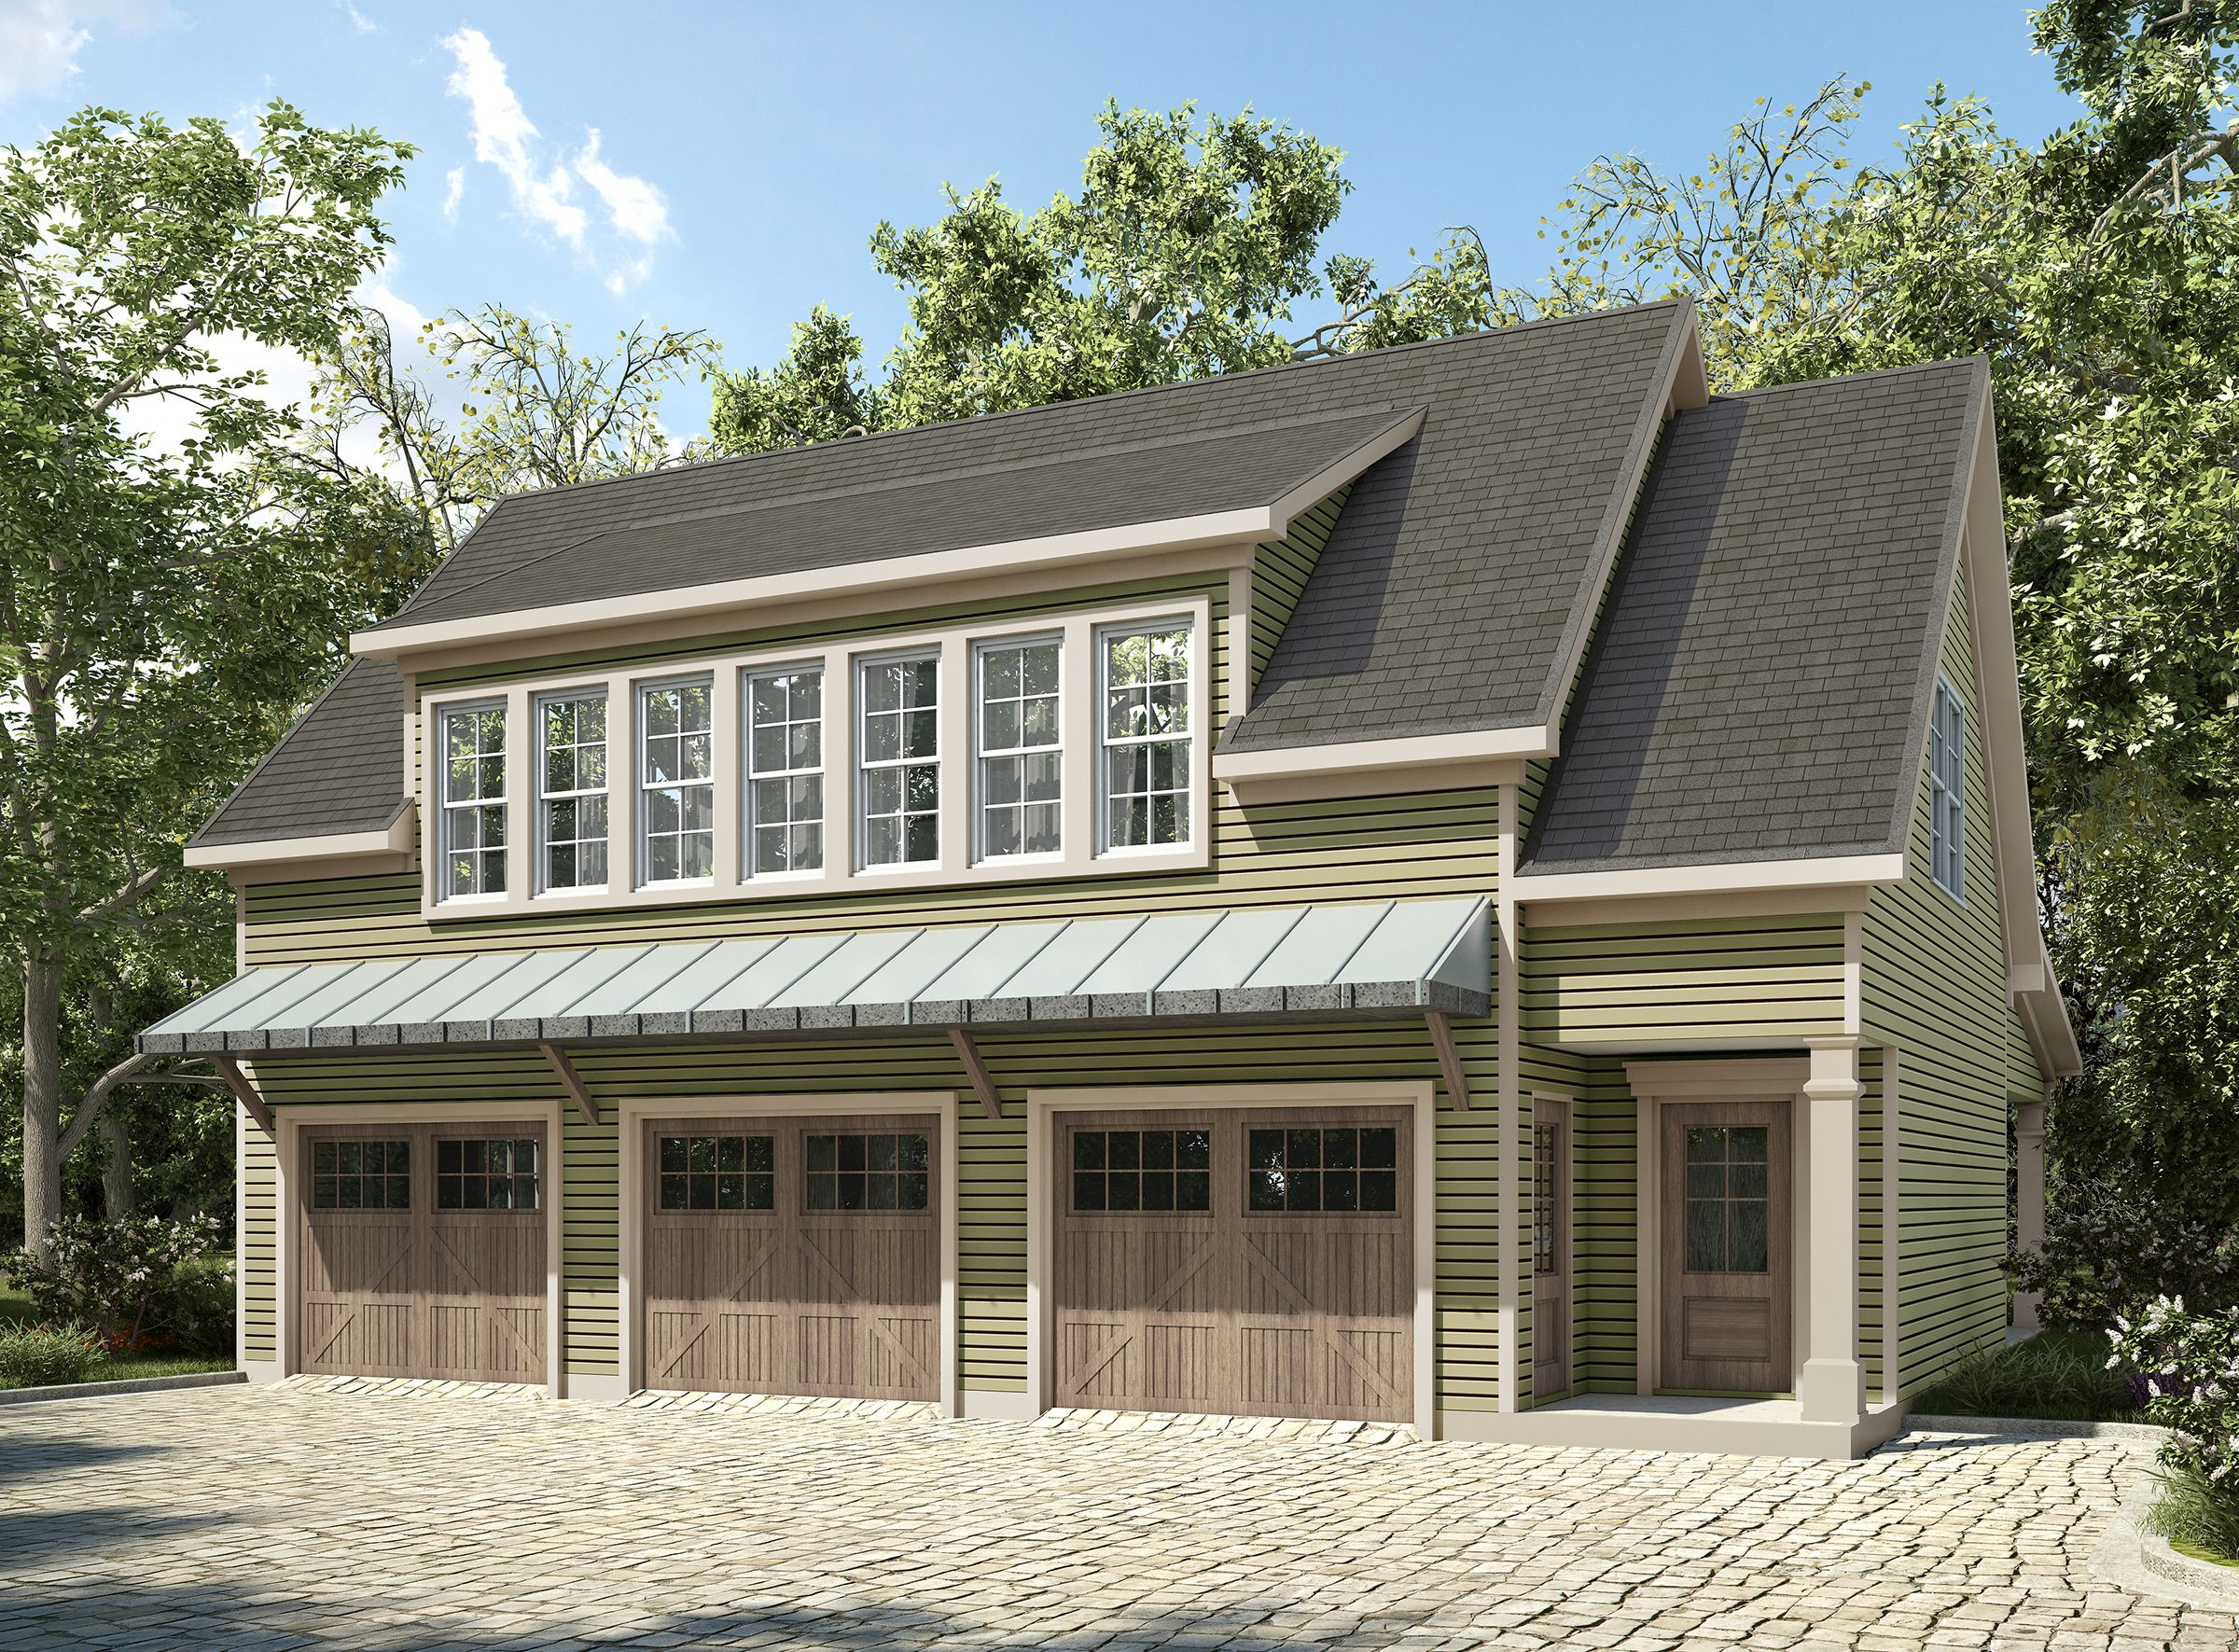 Plan 36057dk 3 bay carriage house plan with shed roof in for Carriage garage plans